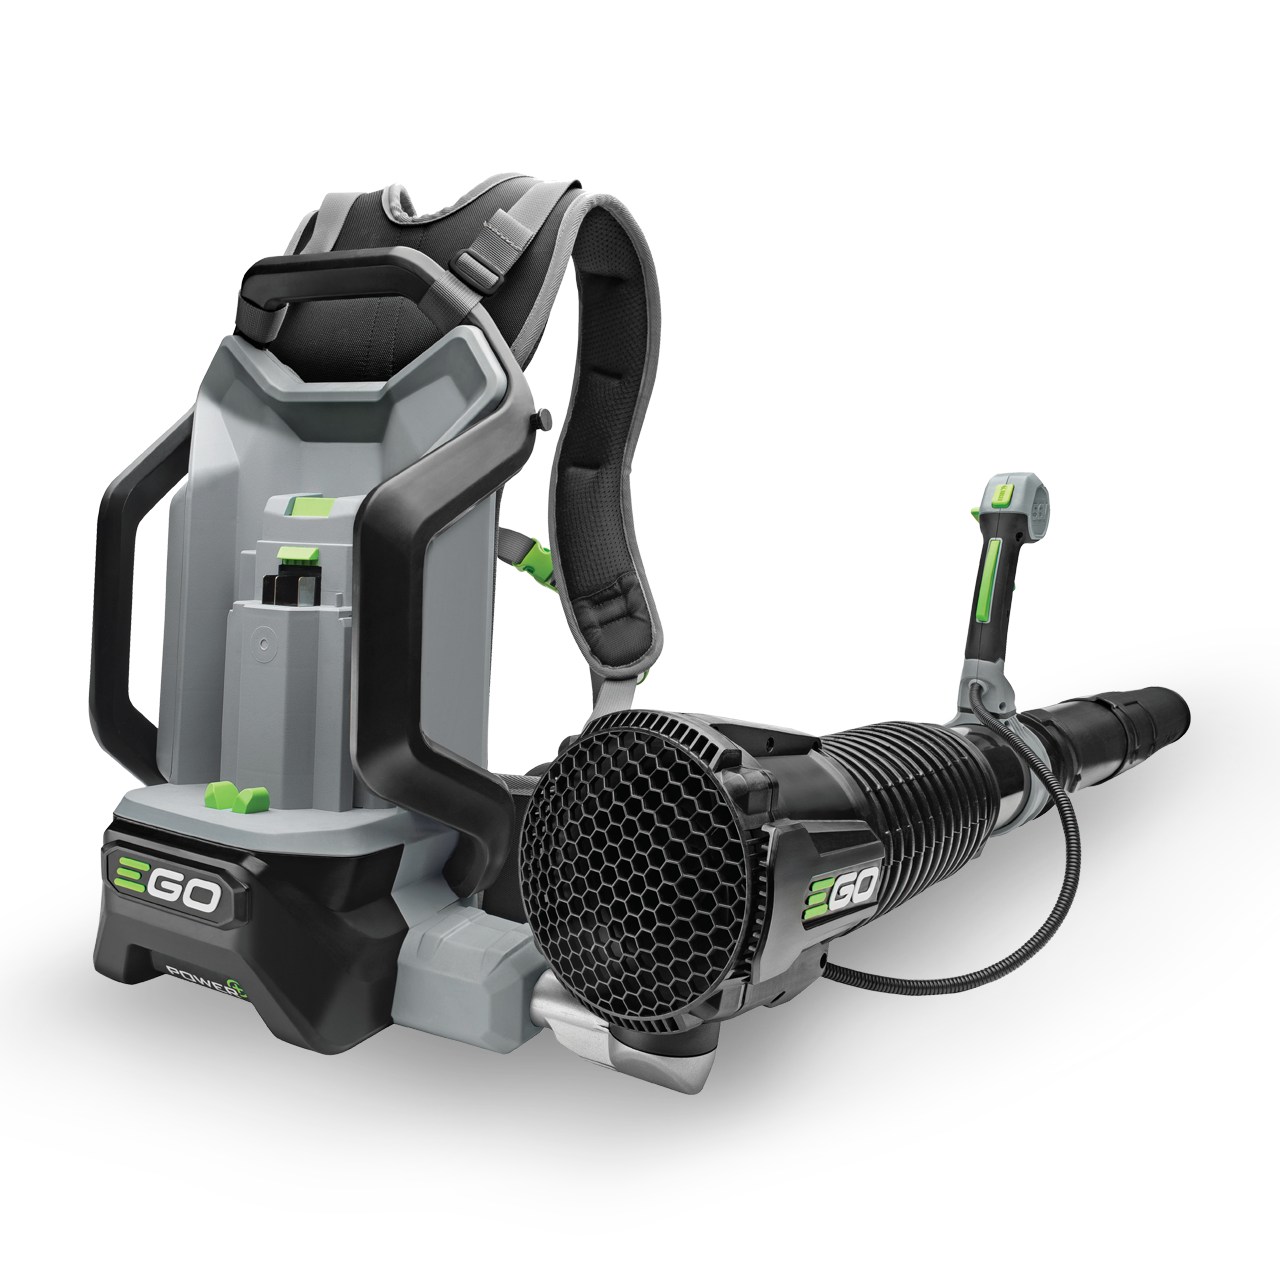 EGO LB6000E Backpack Blower (shell only)